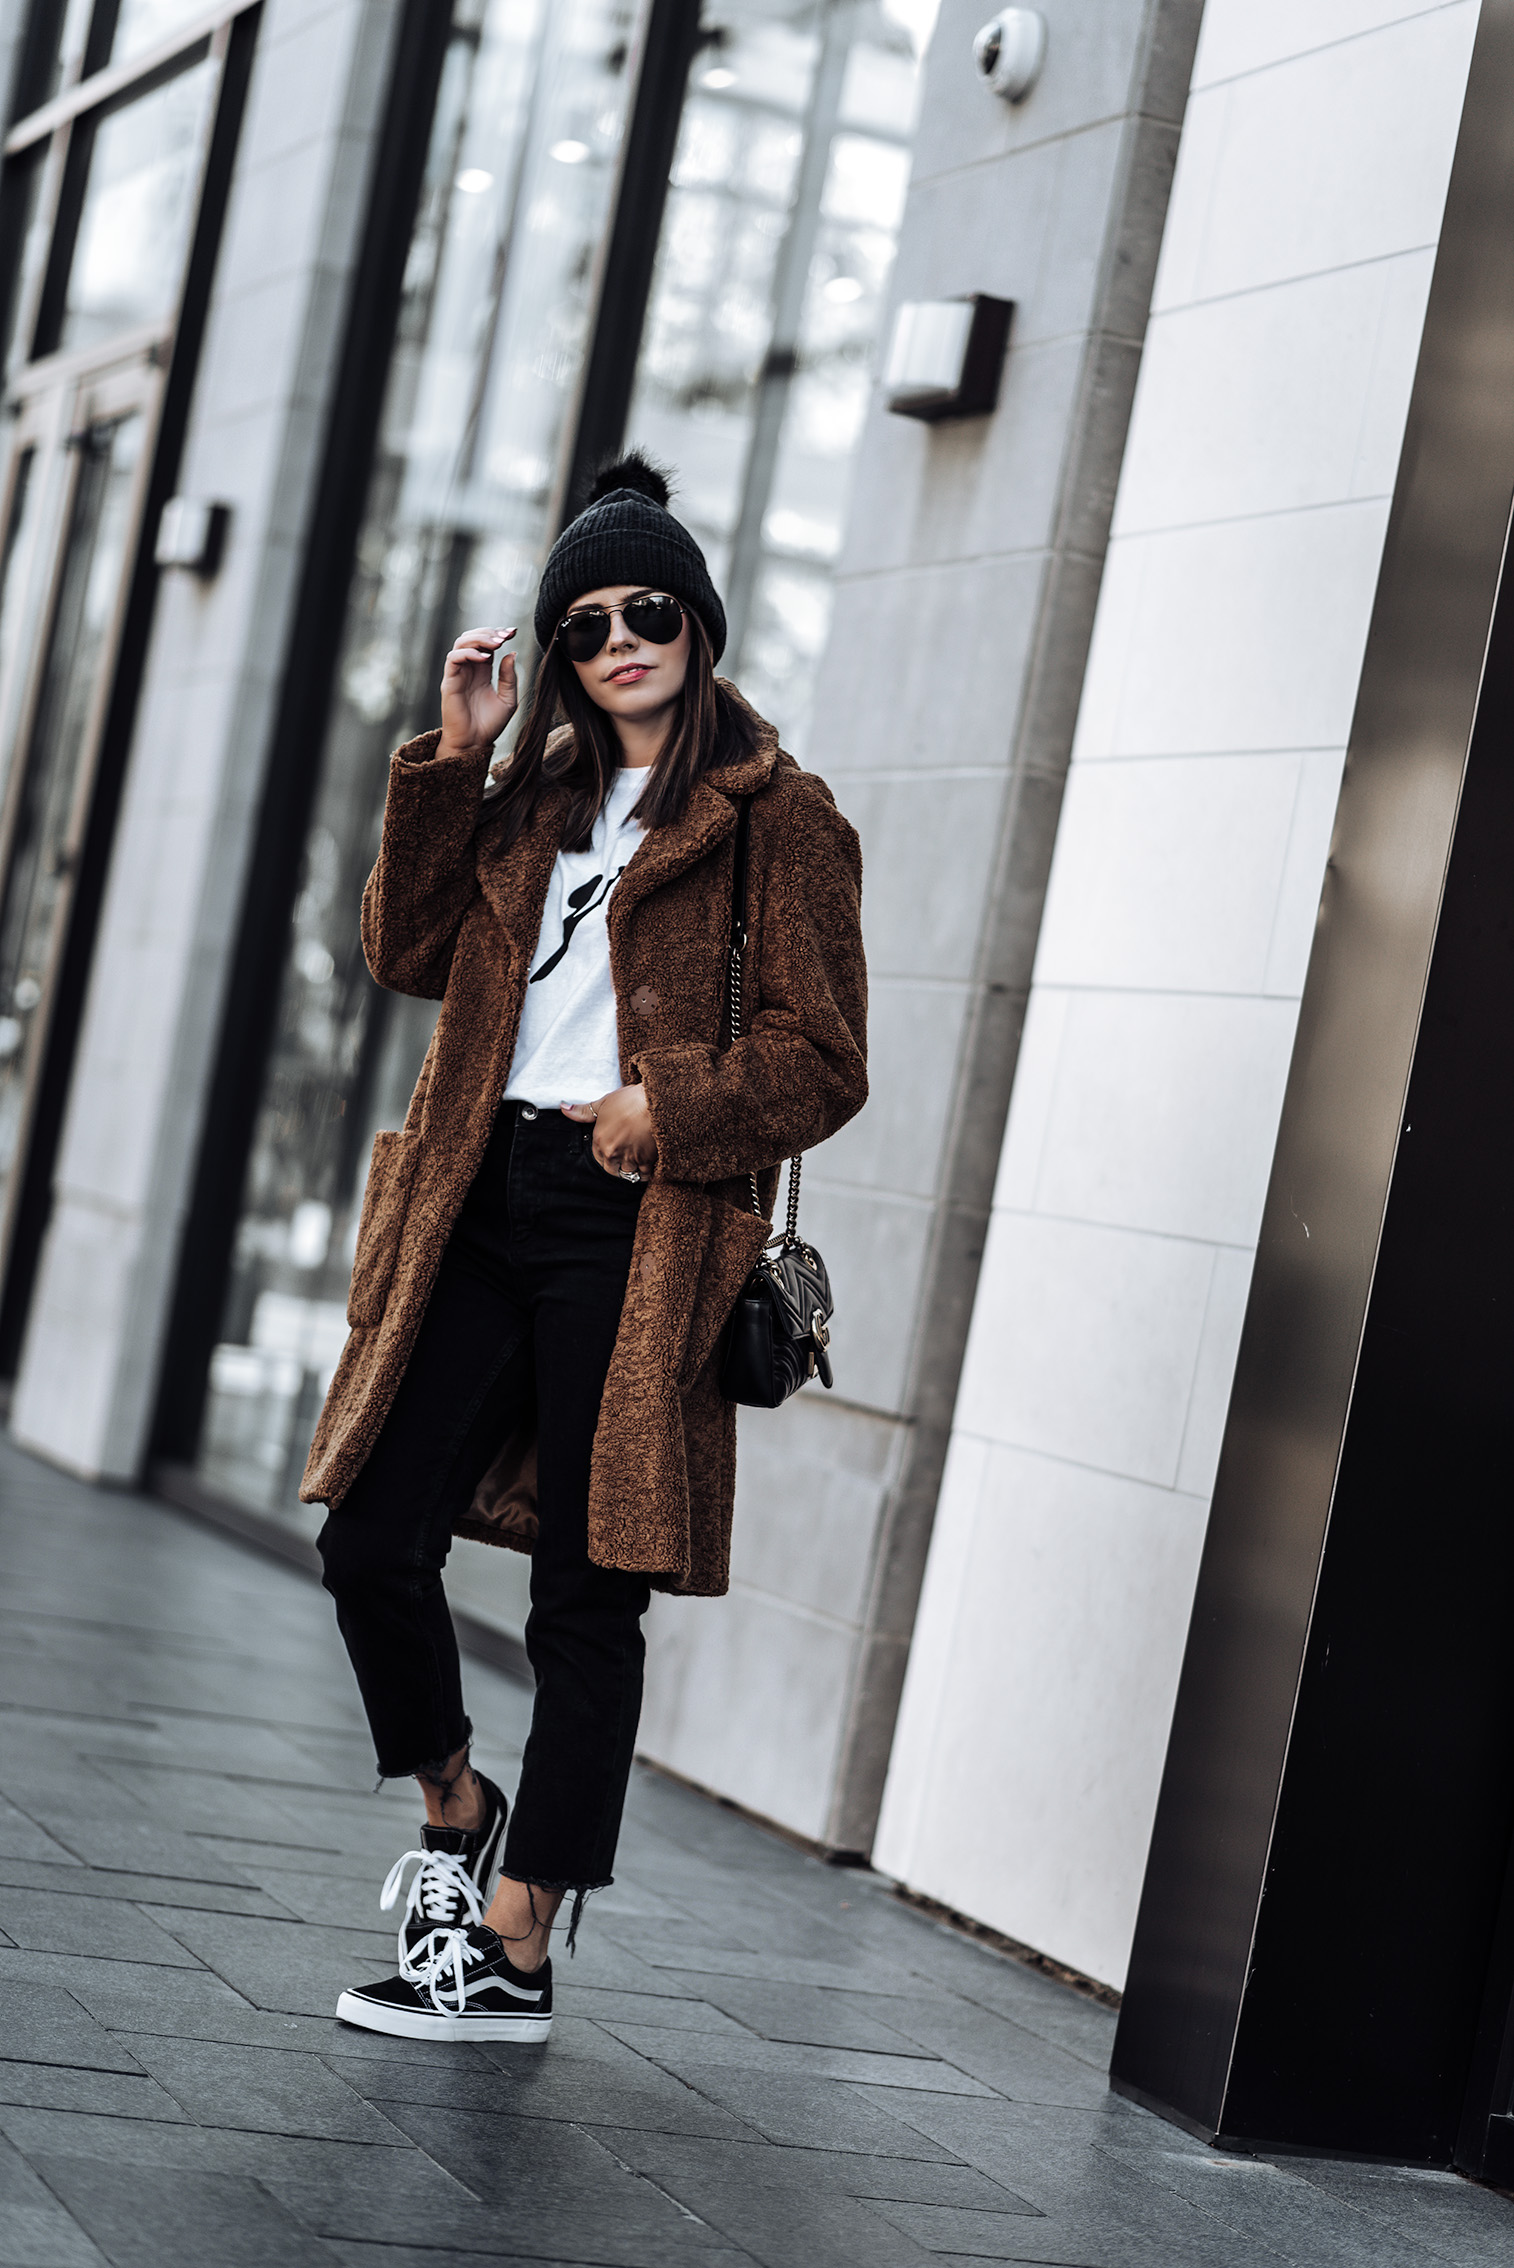 Click to shop the exact look! Teddy Coat (from ASOS, identical here) | Black denim jeans | Les Girls Les Boys Tee | Old Skool Vans | #teddycoatoutfits #winteroutfits #fallfashionoutfits #streetstyle #beanieoutfits